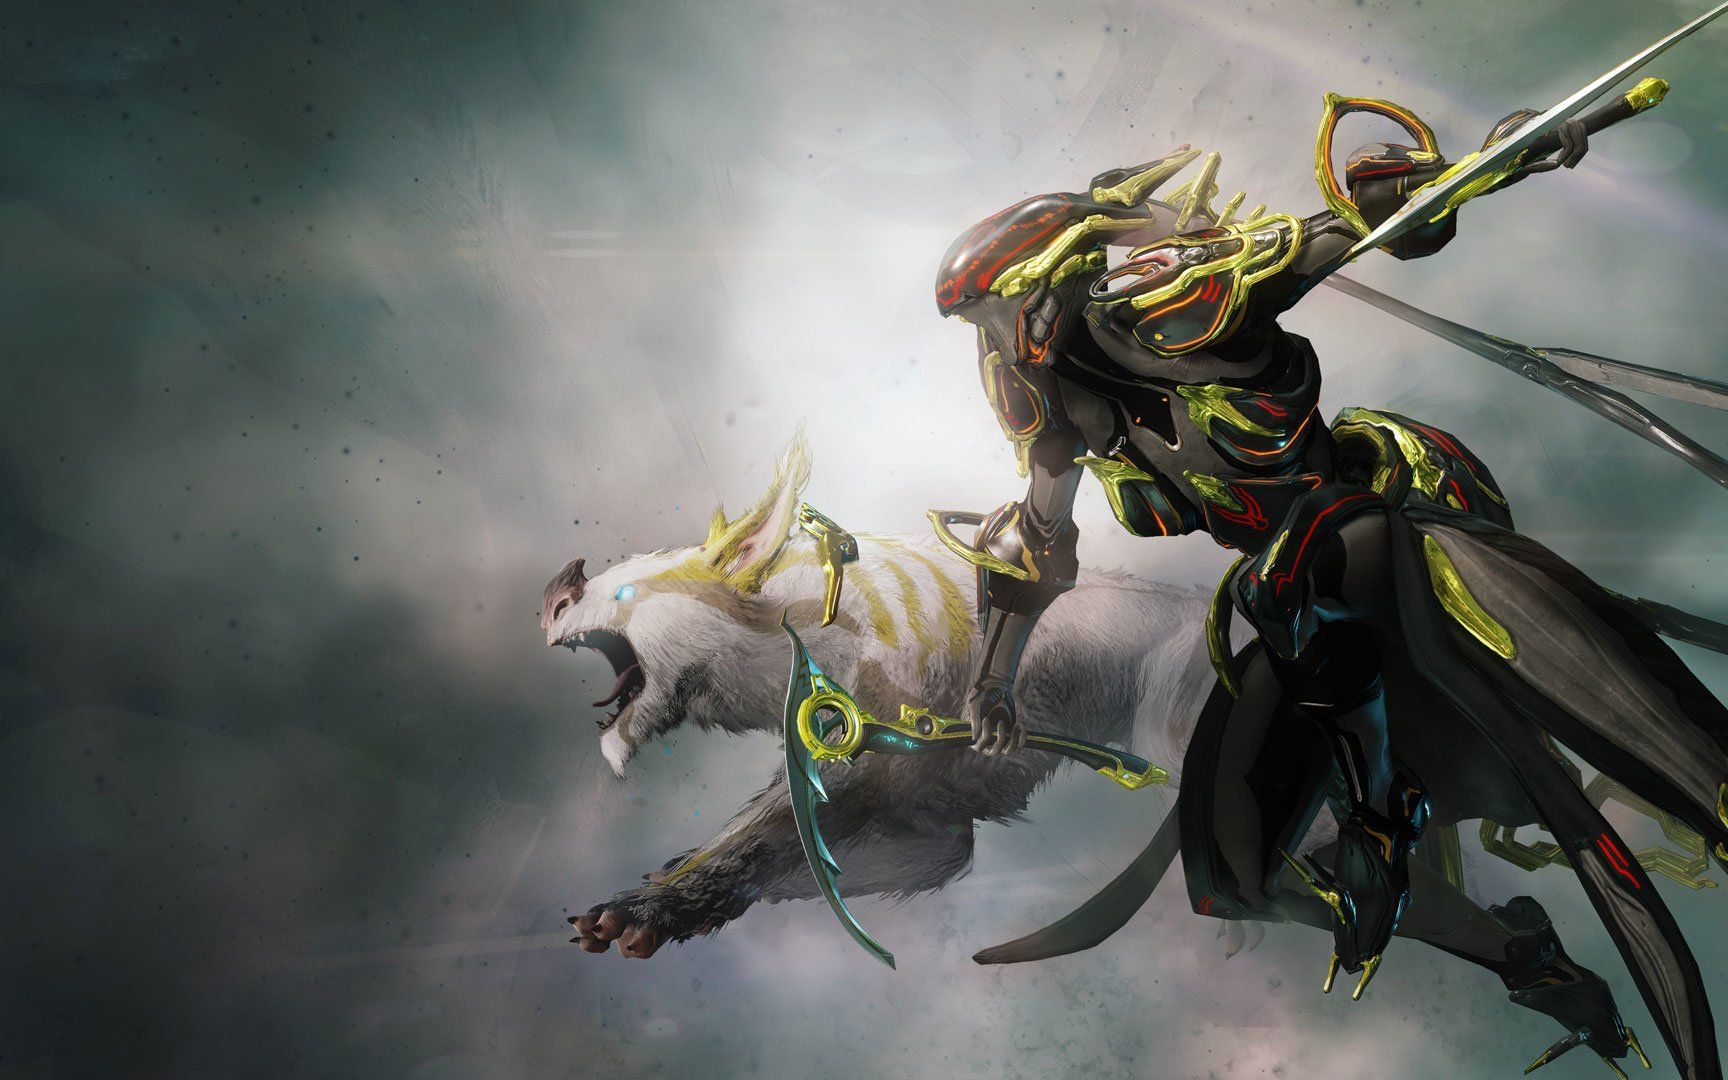 Warframe HD Wallpapers Backgrounds Wallpaper Warframe wallpaper 1728x1080